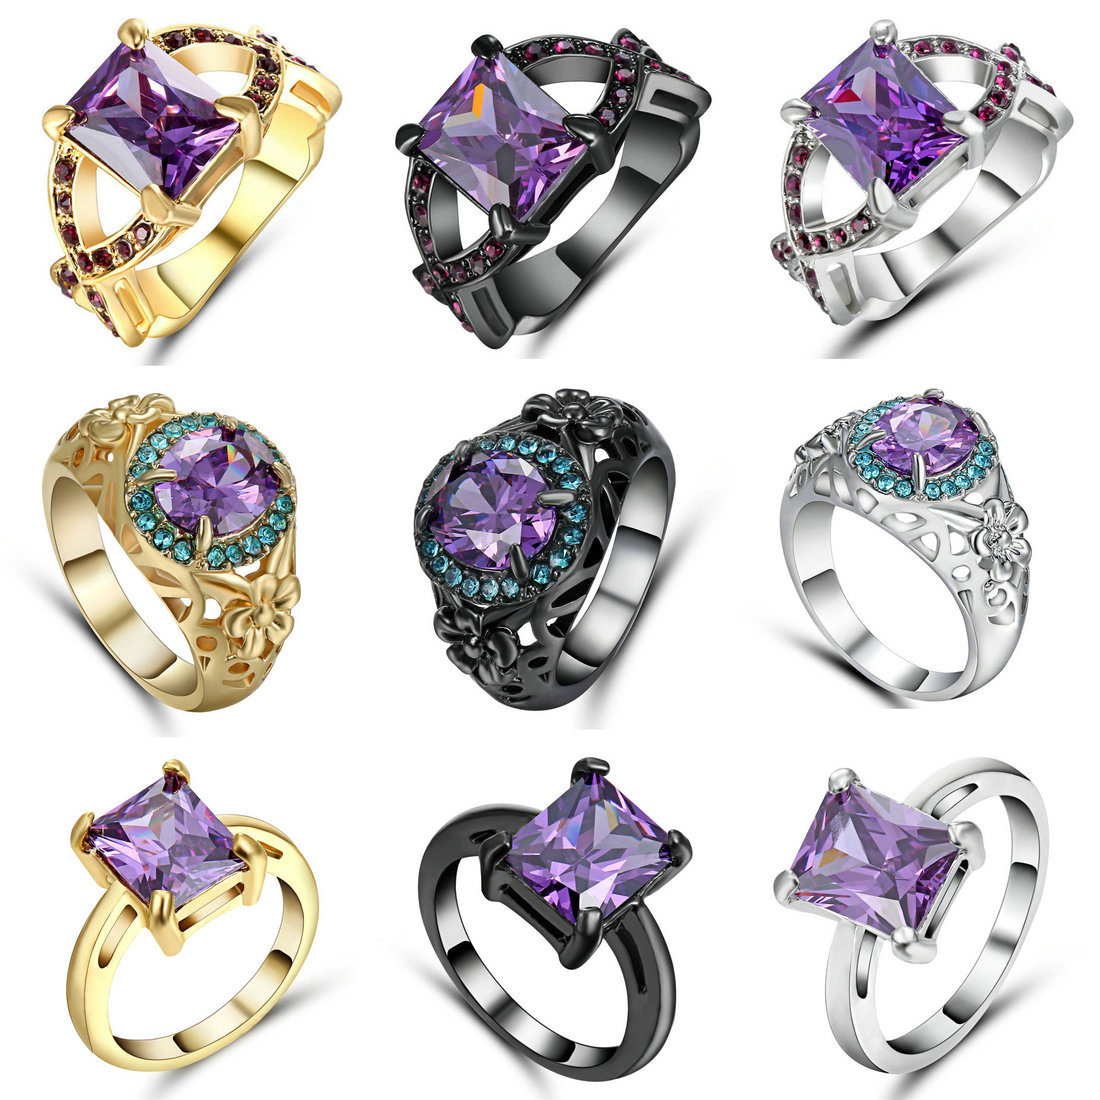 Fashion cross finger ring for lady paved cz zircon luxury hot Princess women Wedding Engagement Ring purple color jewelry